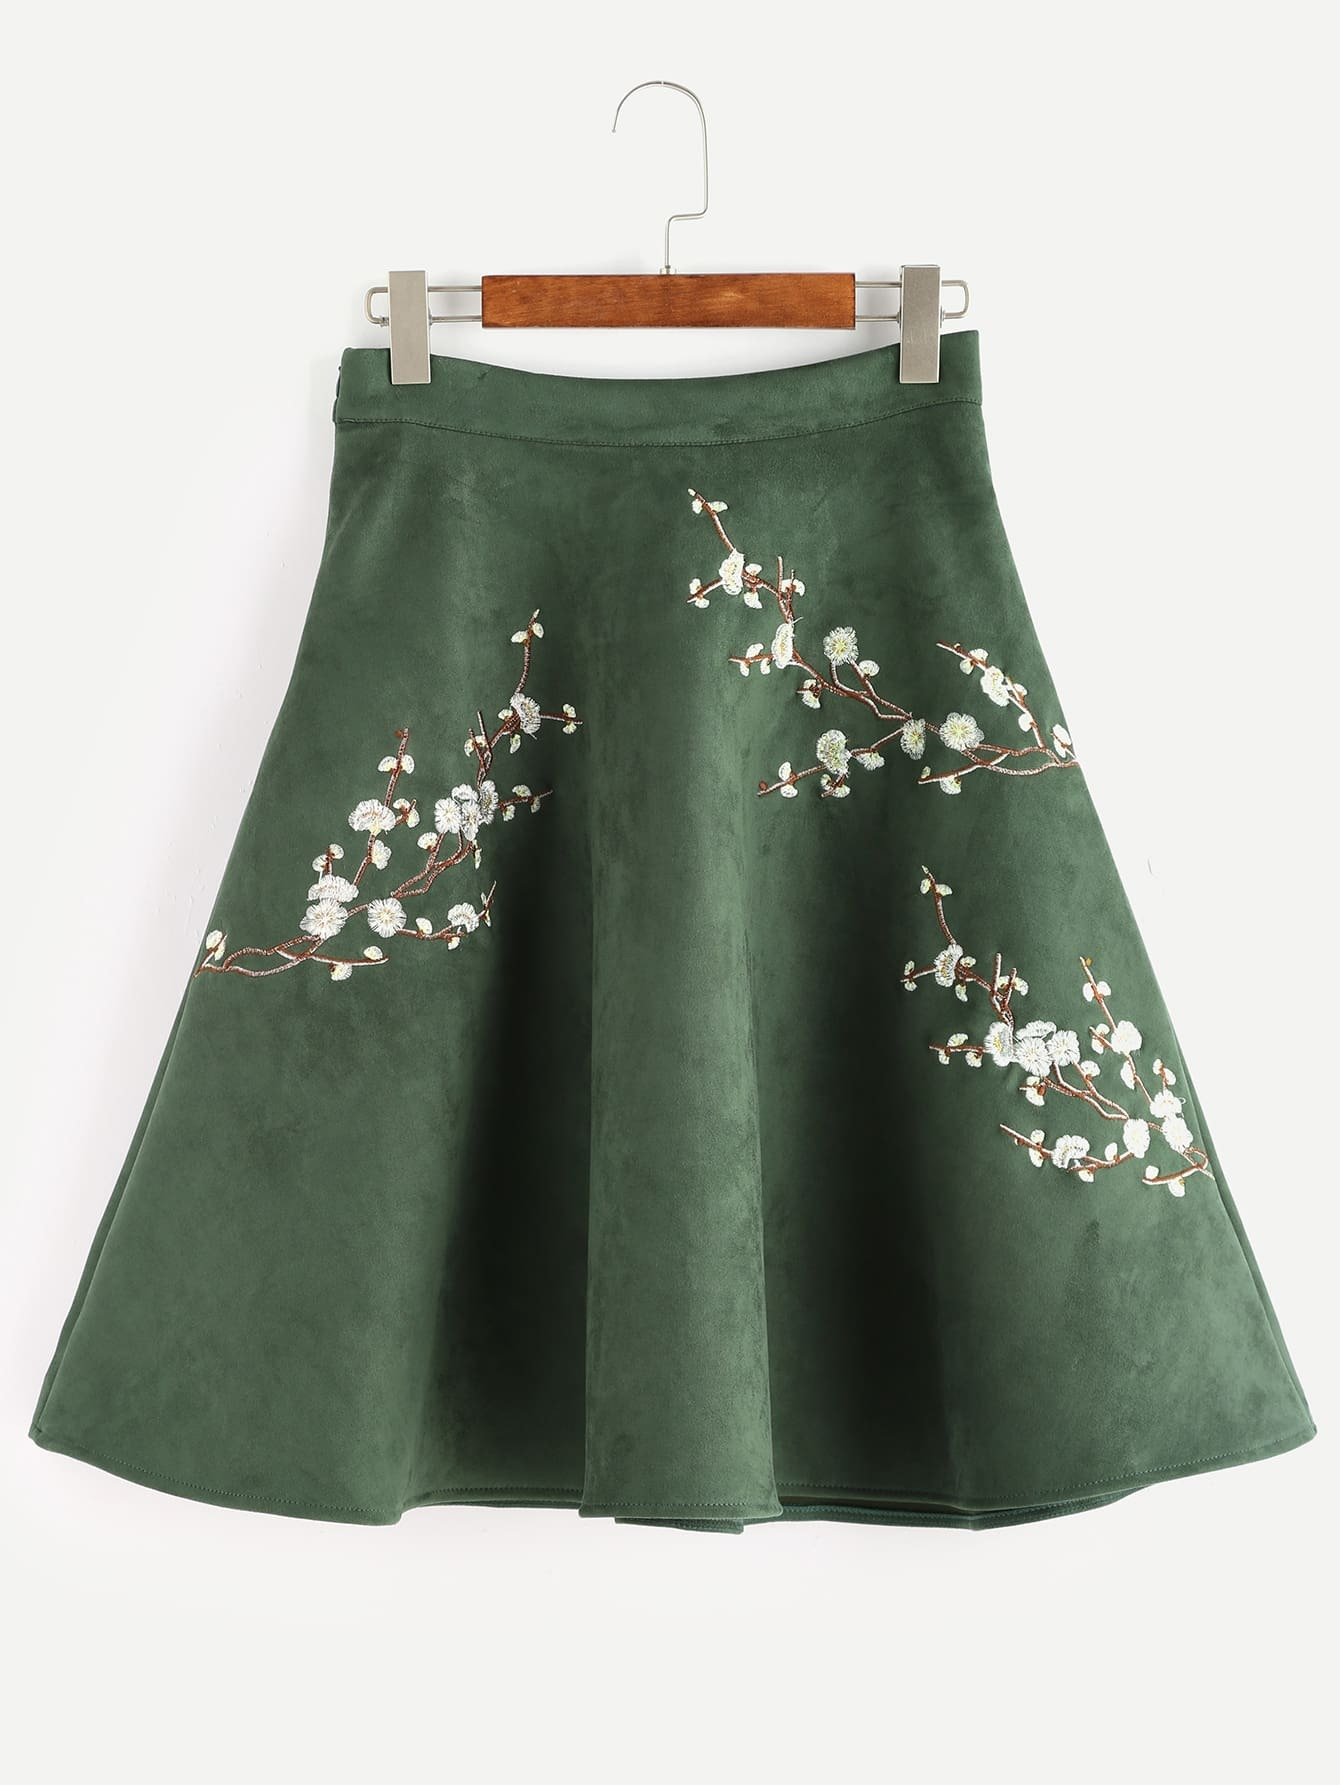 Army Green Flower Embroidered Suede A-Line Skirt -SheIn(Sheinside)